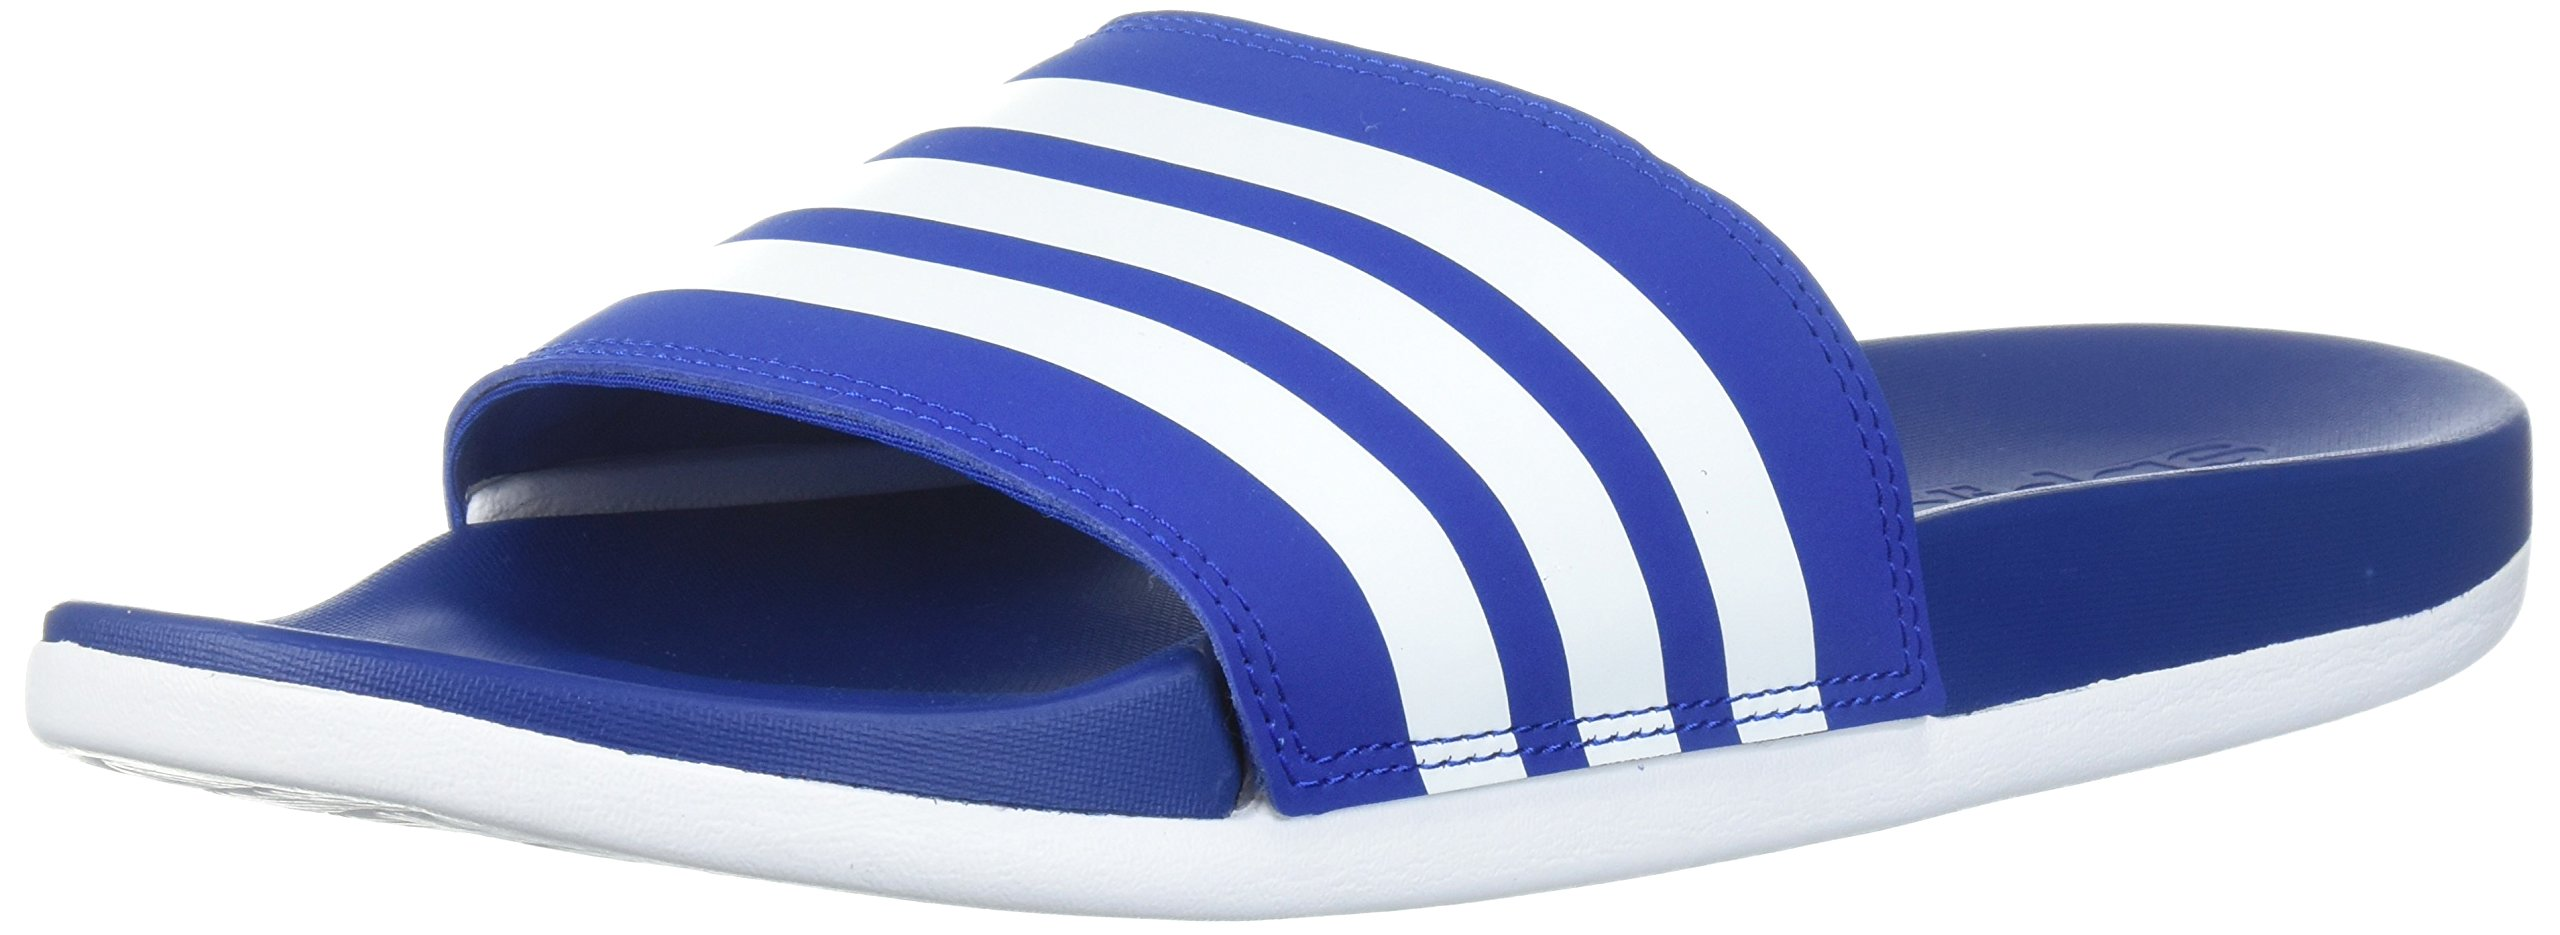 adidas Men's Adilette CF+ Slide Sandal, Collegiate Royal/White/Collegiate Royal, 6 M US